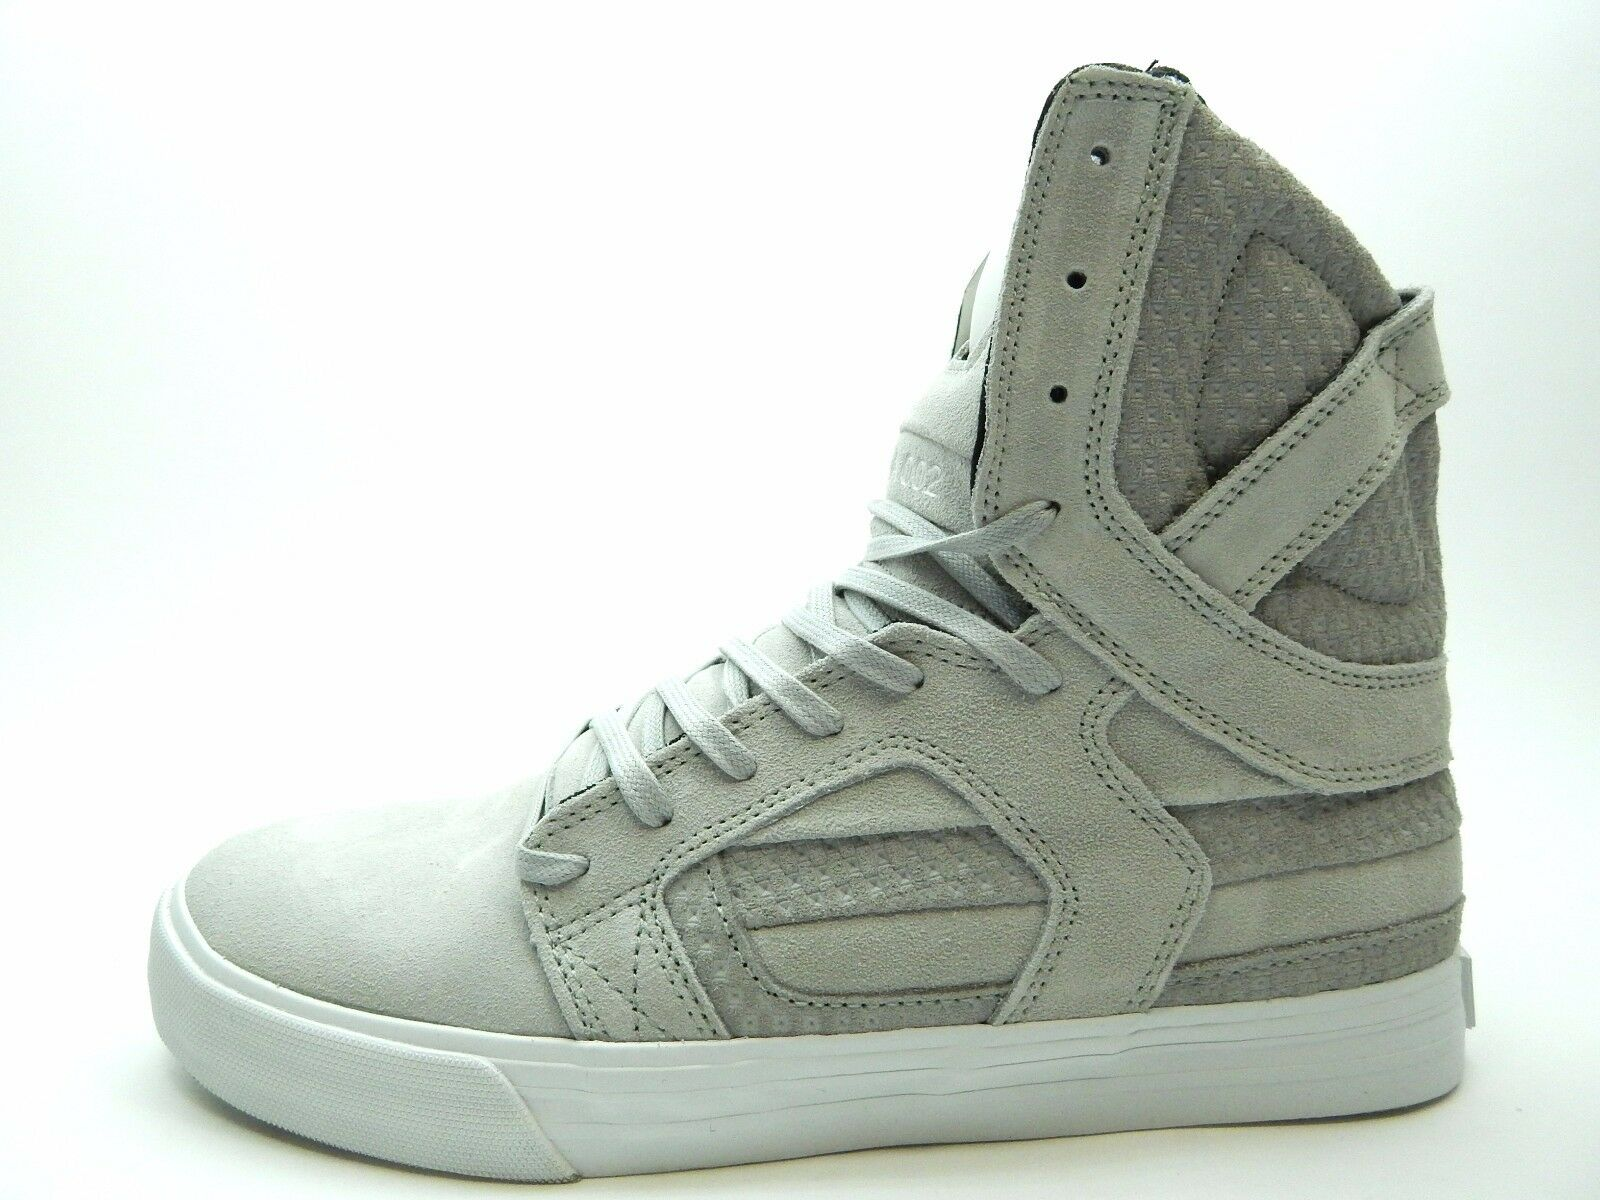 supra 08008-042-m chaussures hommes gris blanc skytop ii chaussures 08008-042-m taille 8 à 14 901002